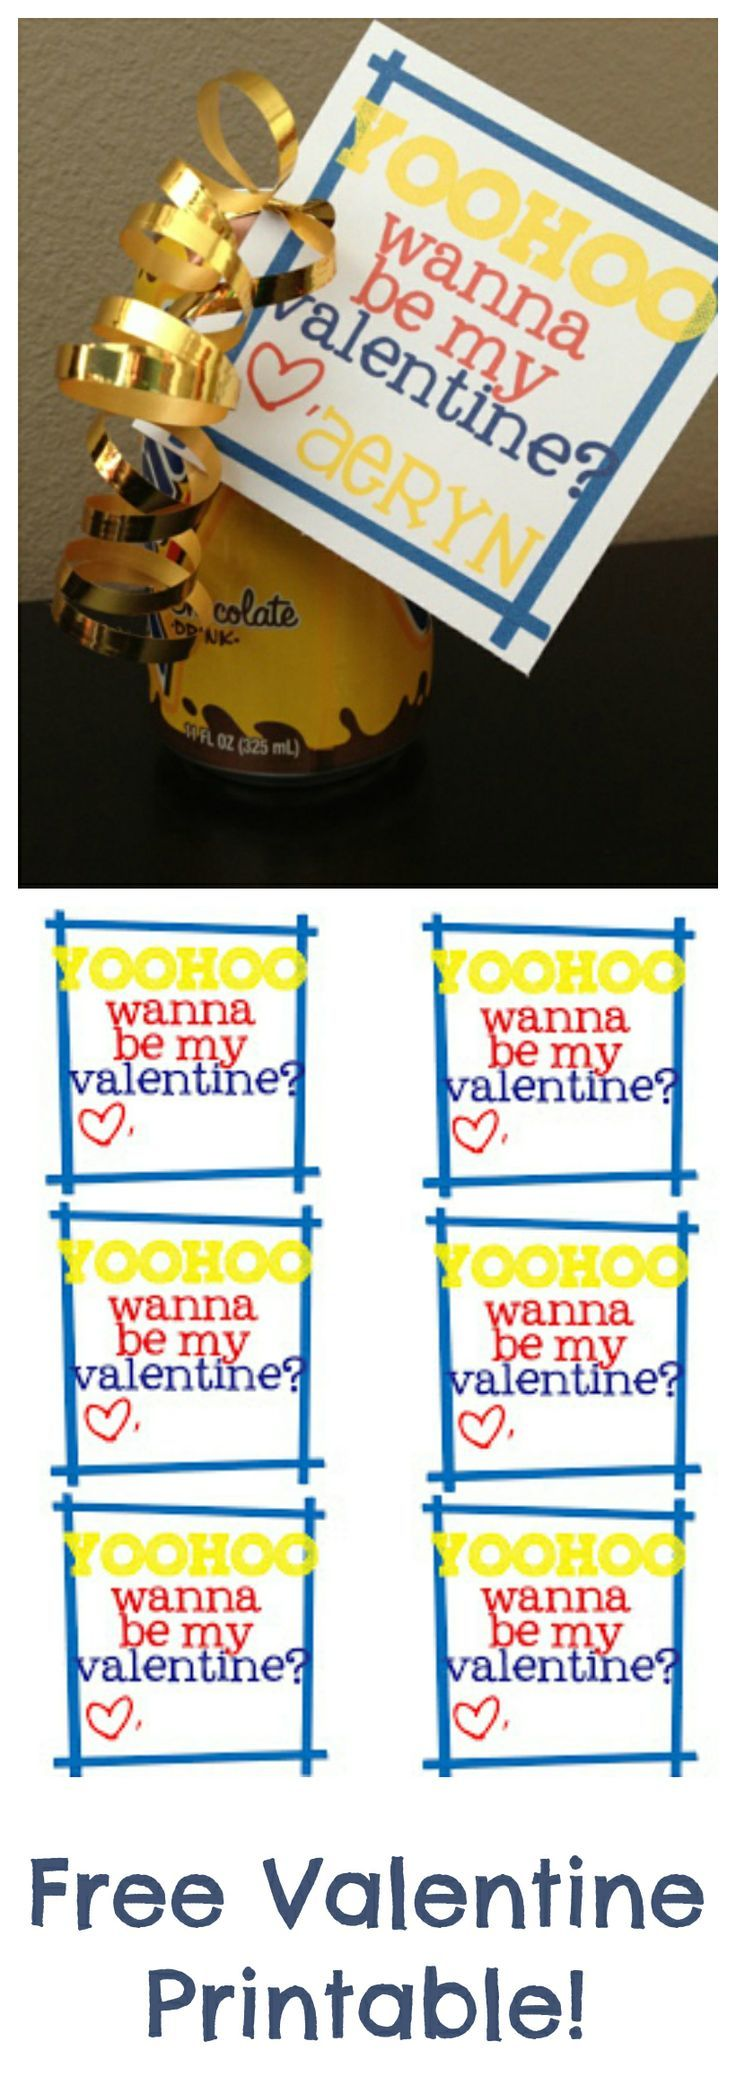 i have a crush on you soda can valentine free printable free